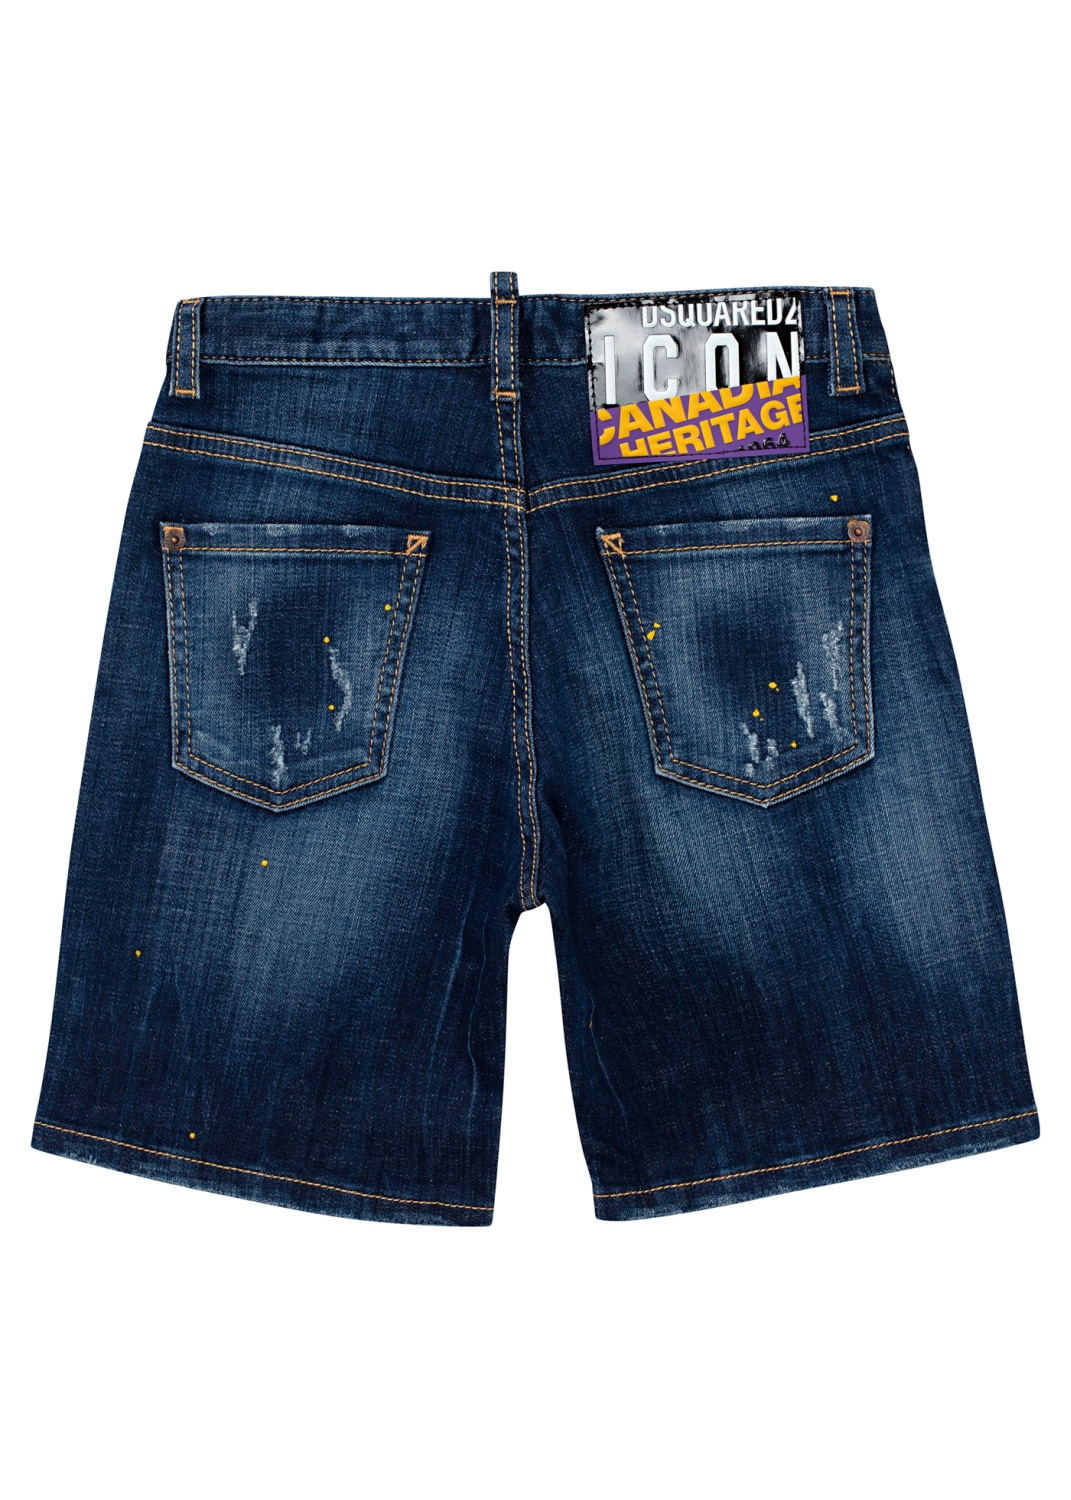 ICON Denim SHORTS image number 1